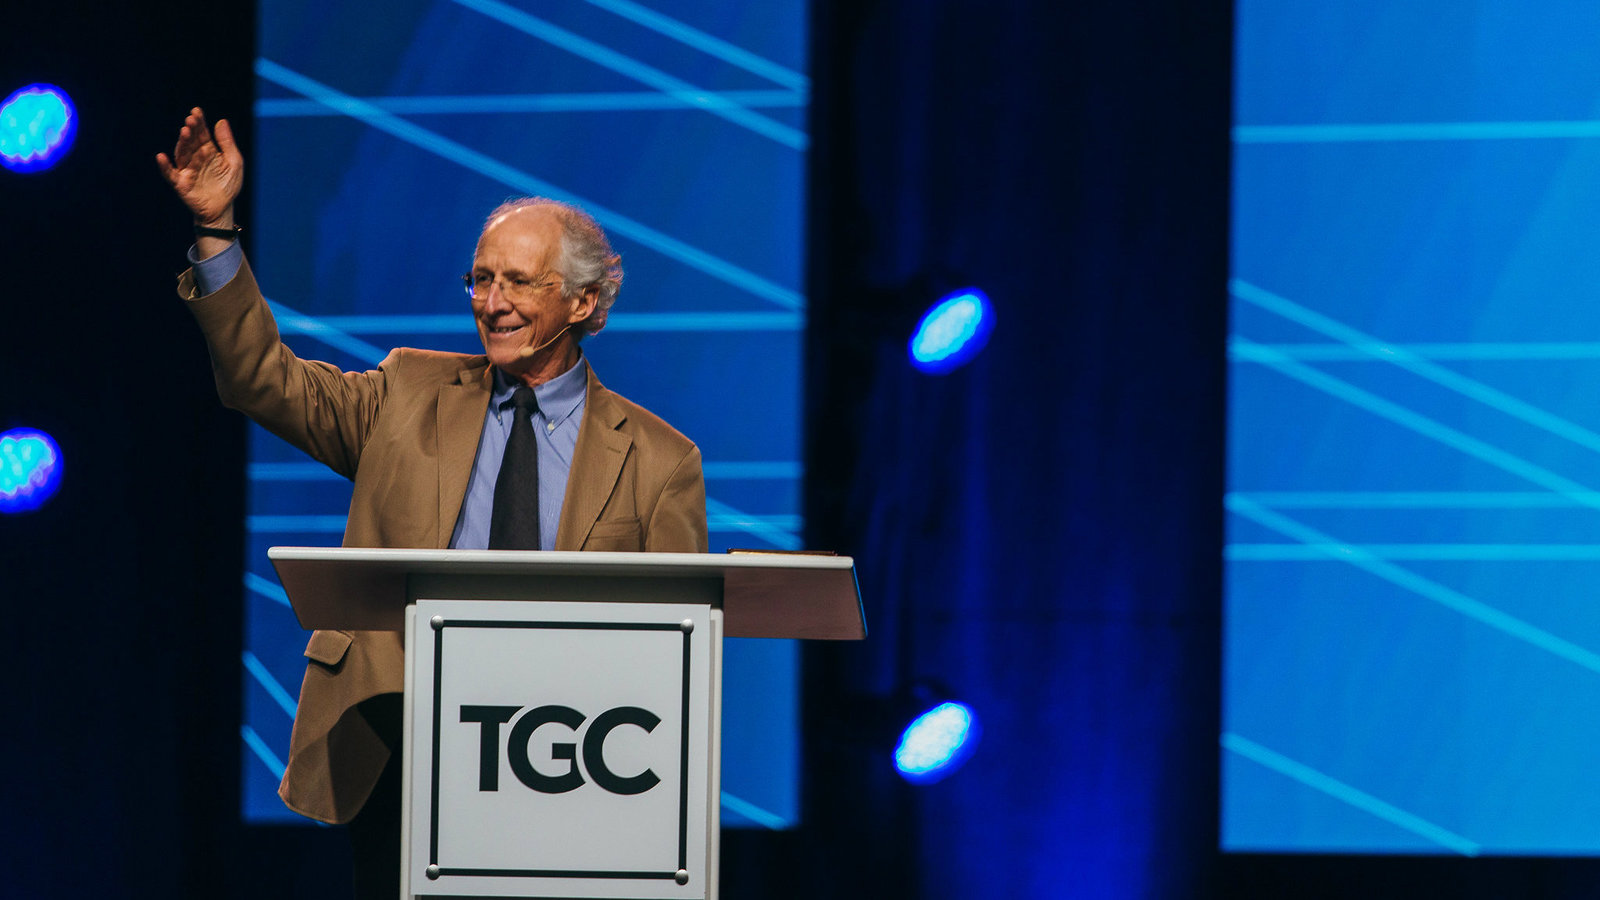 No Other Gospel - Exposition of Galatians 1 by John Piper